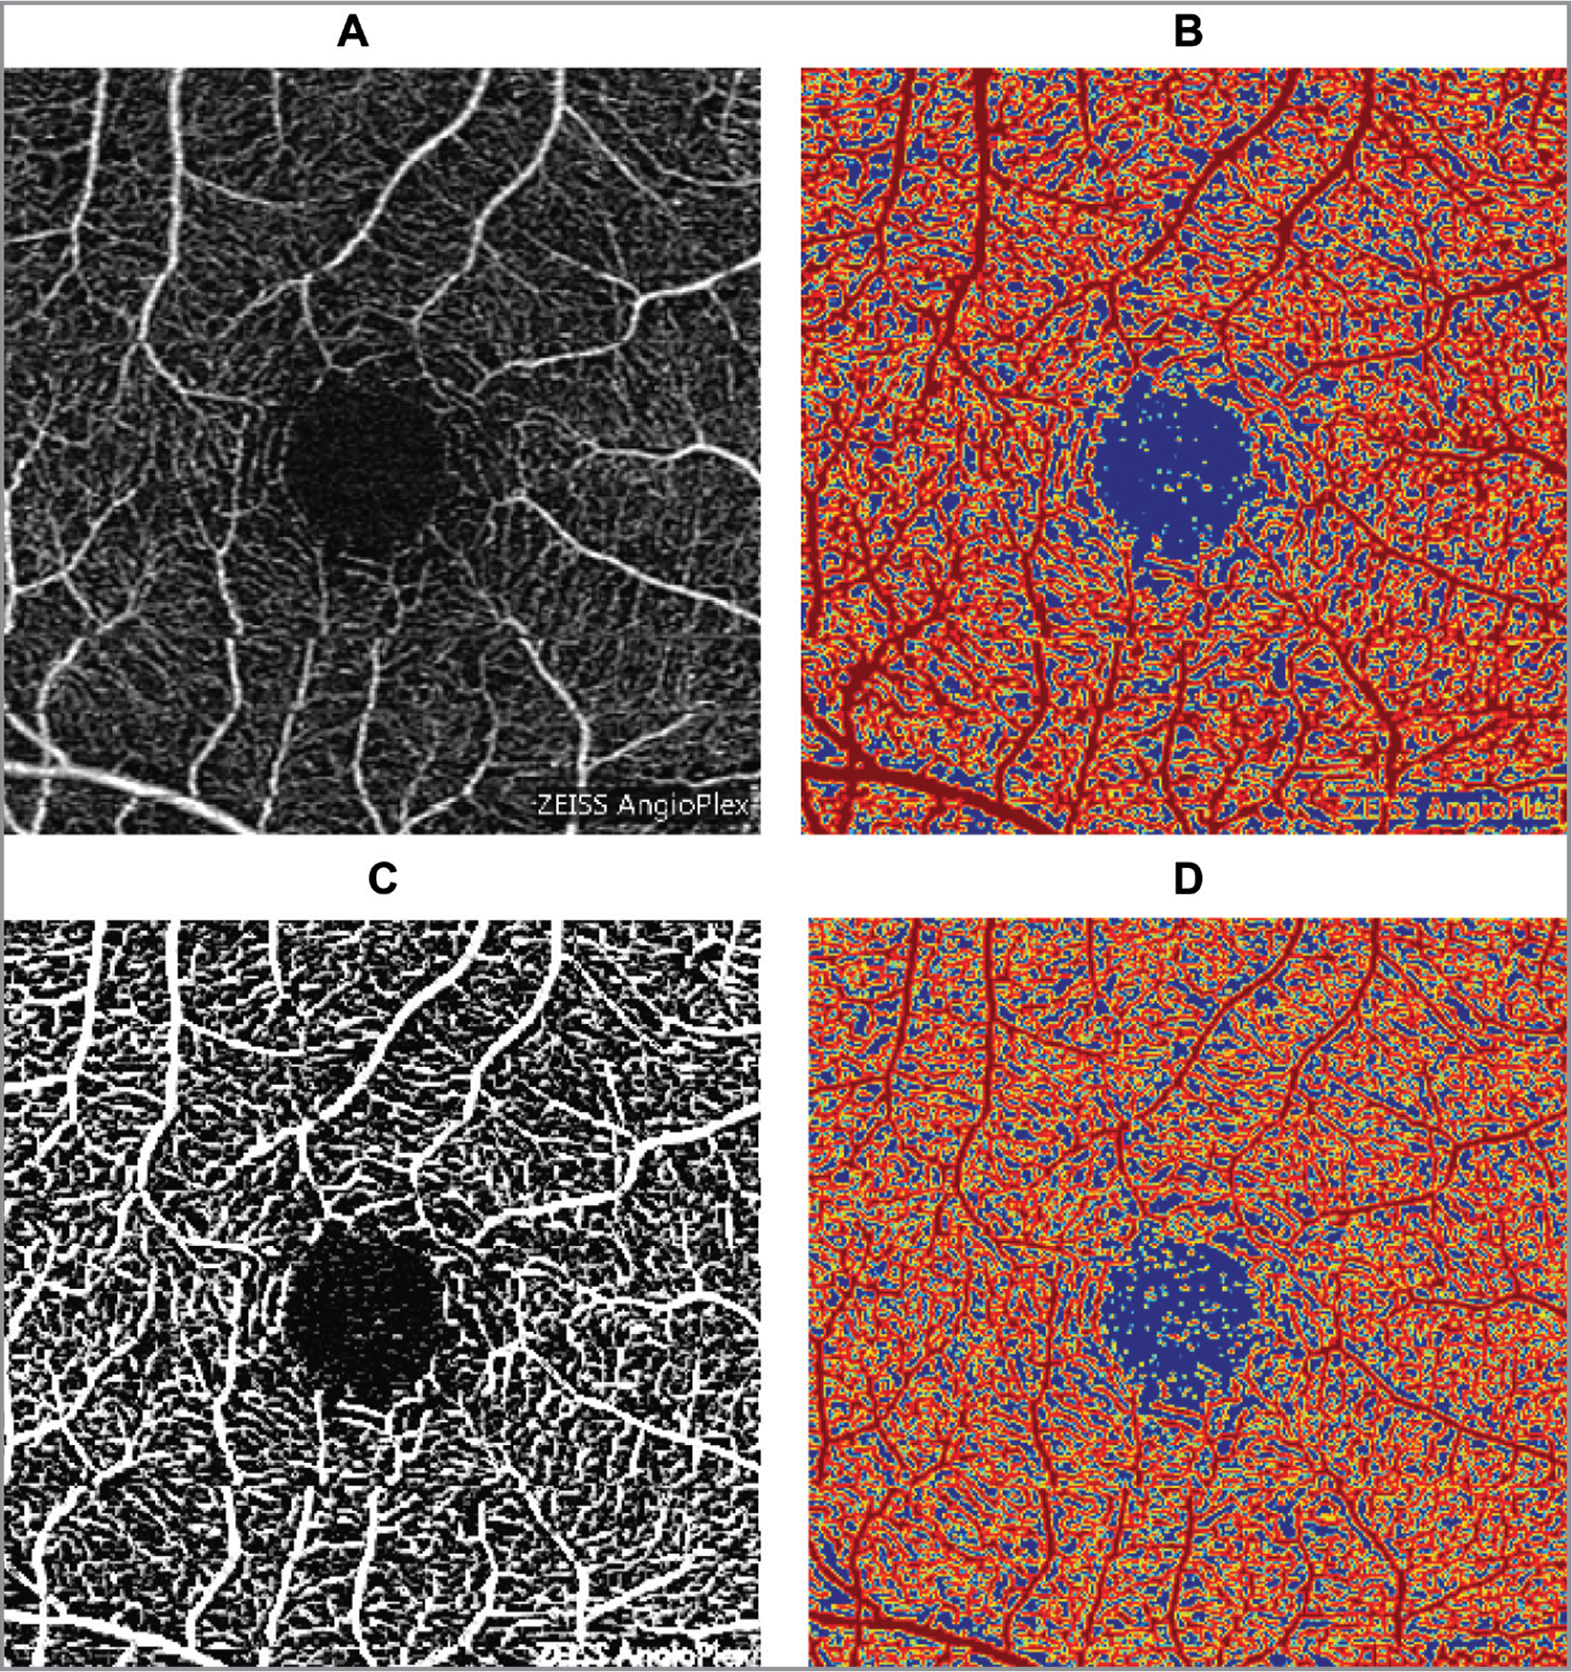 Angioplex optical coherence tomography image of the superficial plexus before (A) and after (B) the application of Frangi filter, respectively. Corresponding contour maps (C, D).